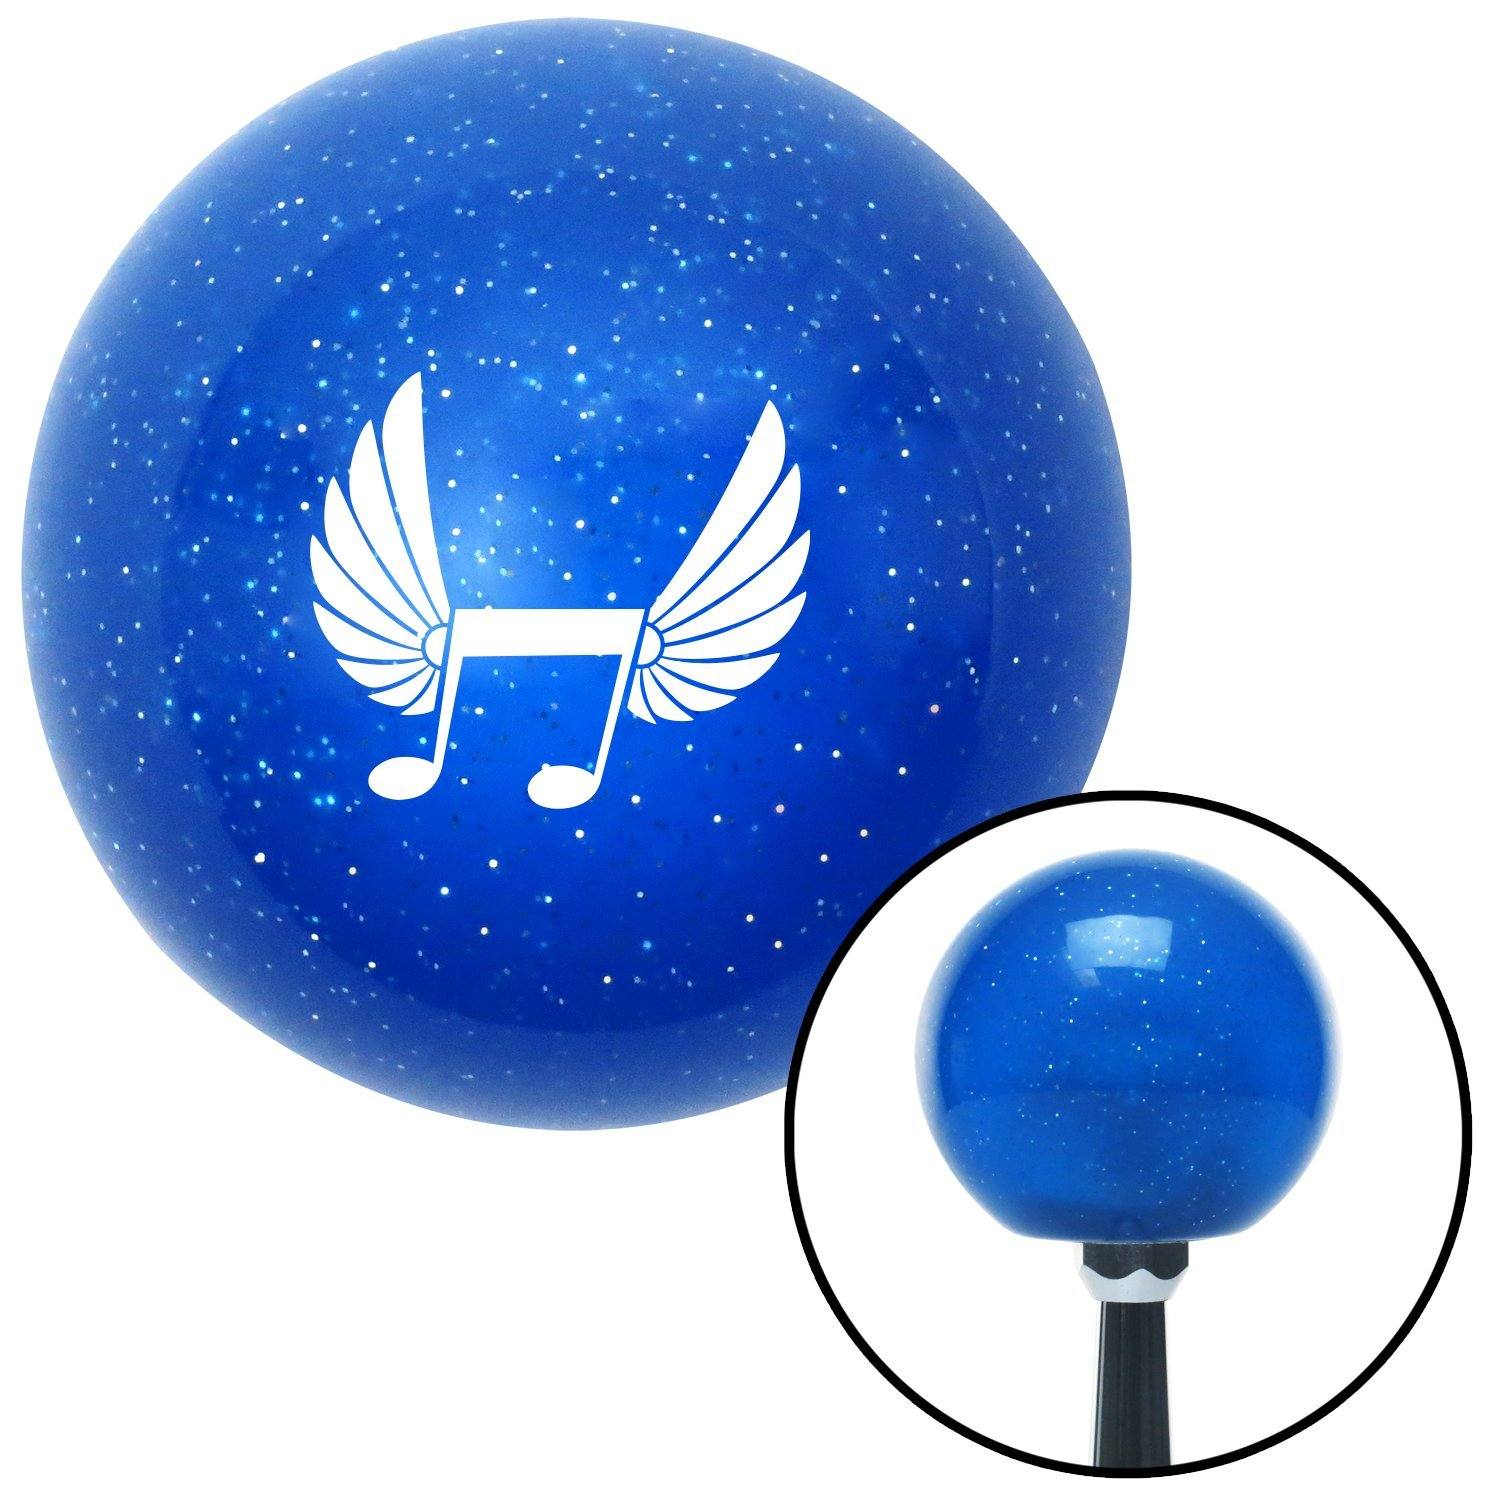 White Musical Note w//Wings American Shifter 24634 Blue Metal Flake Shift Knob